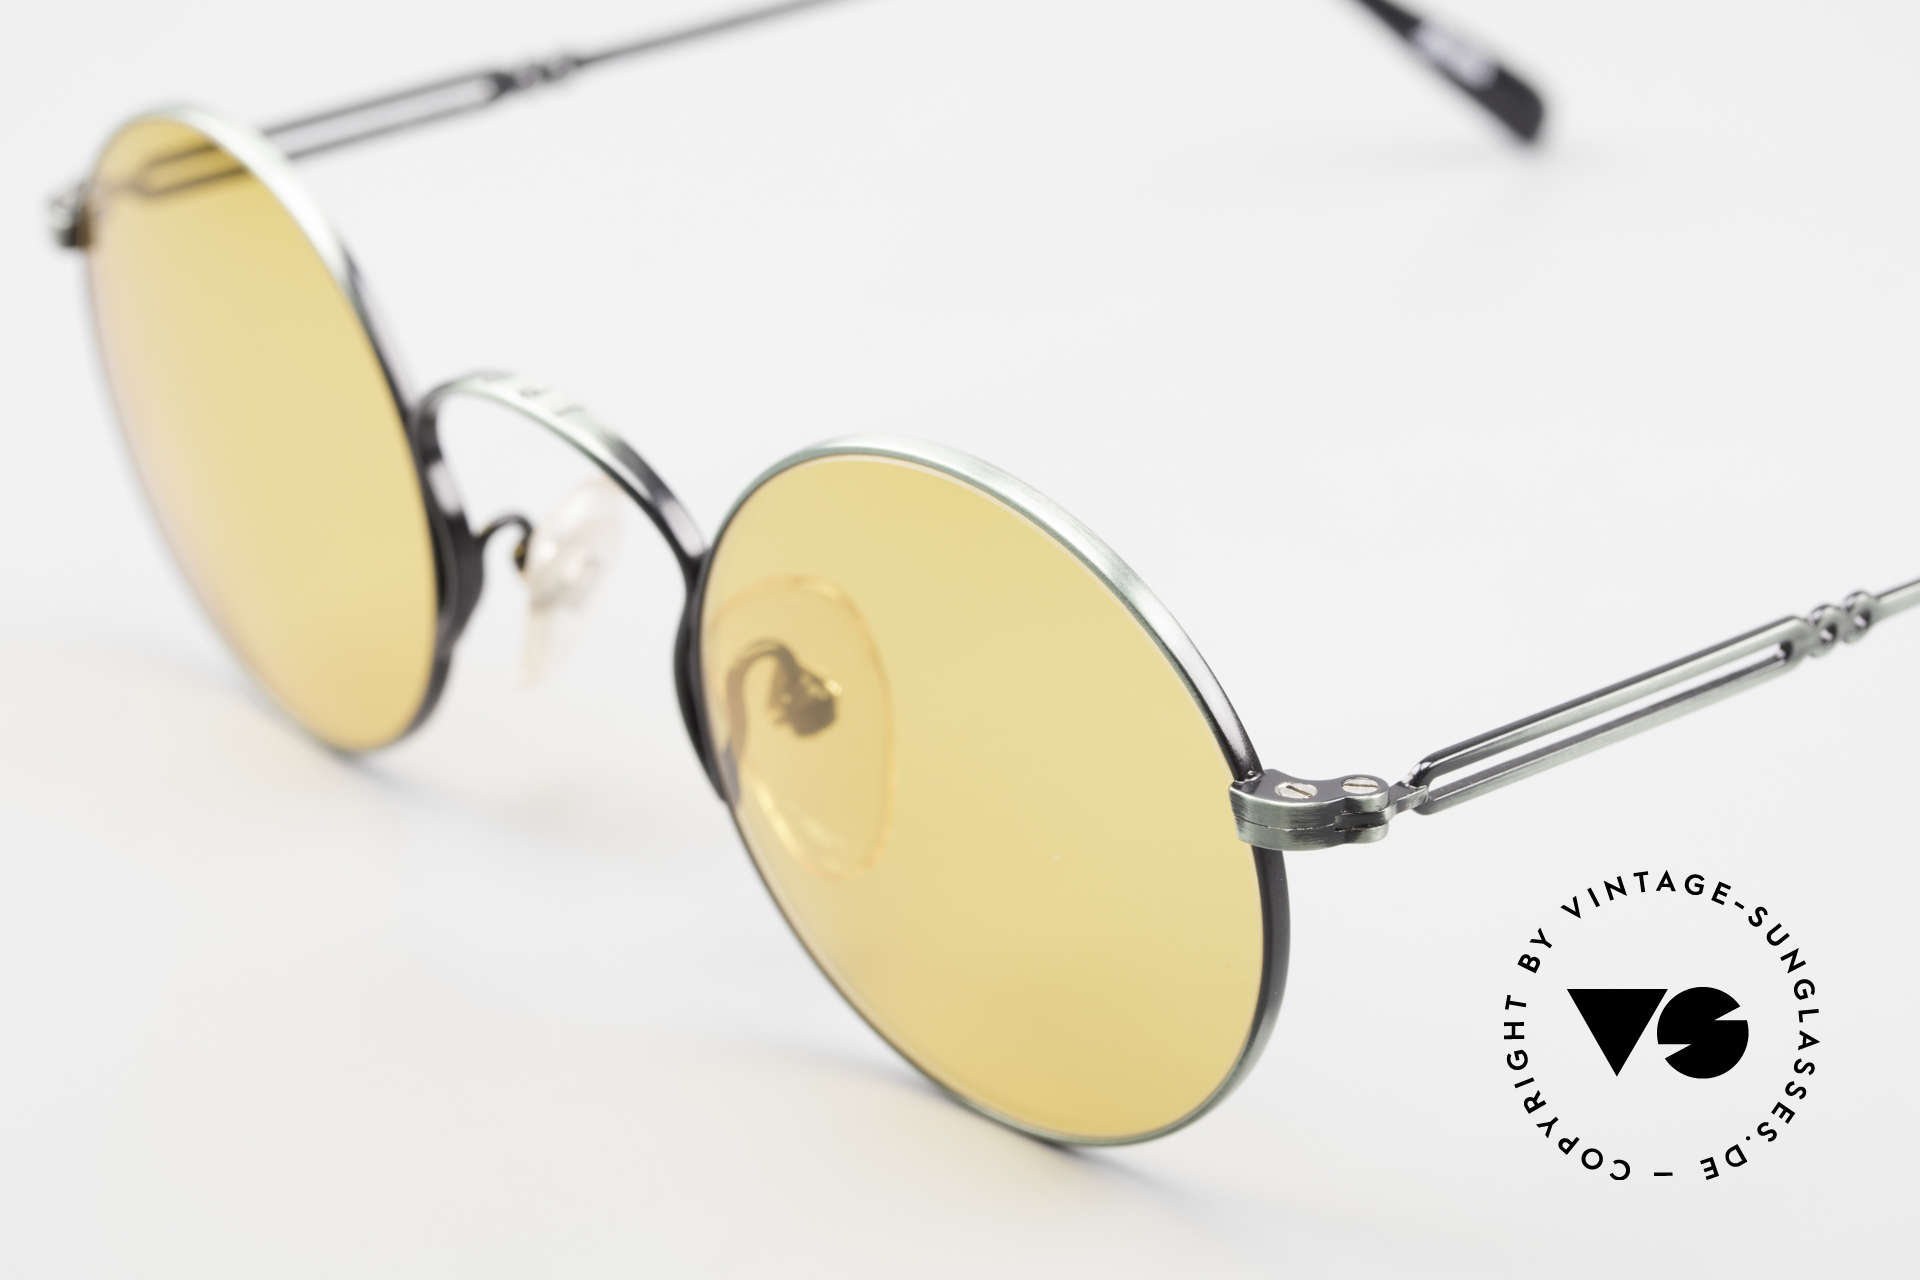 Jean Paul Gaultier 55-0172 Round 90's Vintage Glasses JPG, new old stock (like all our rare vintage sunglasses), Made for Men and Women